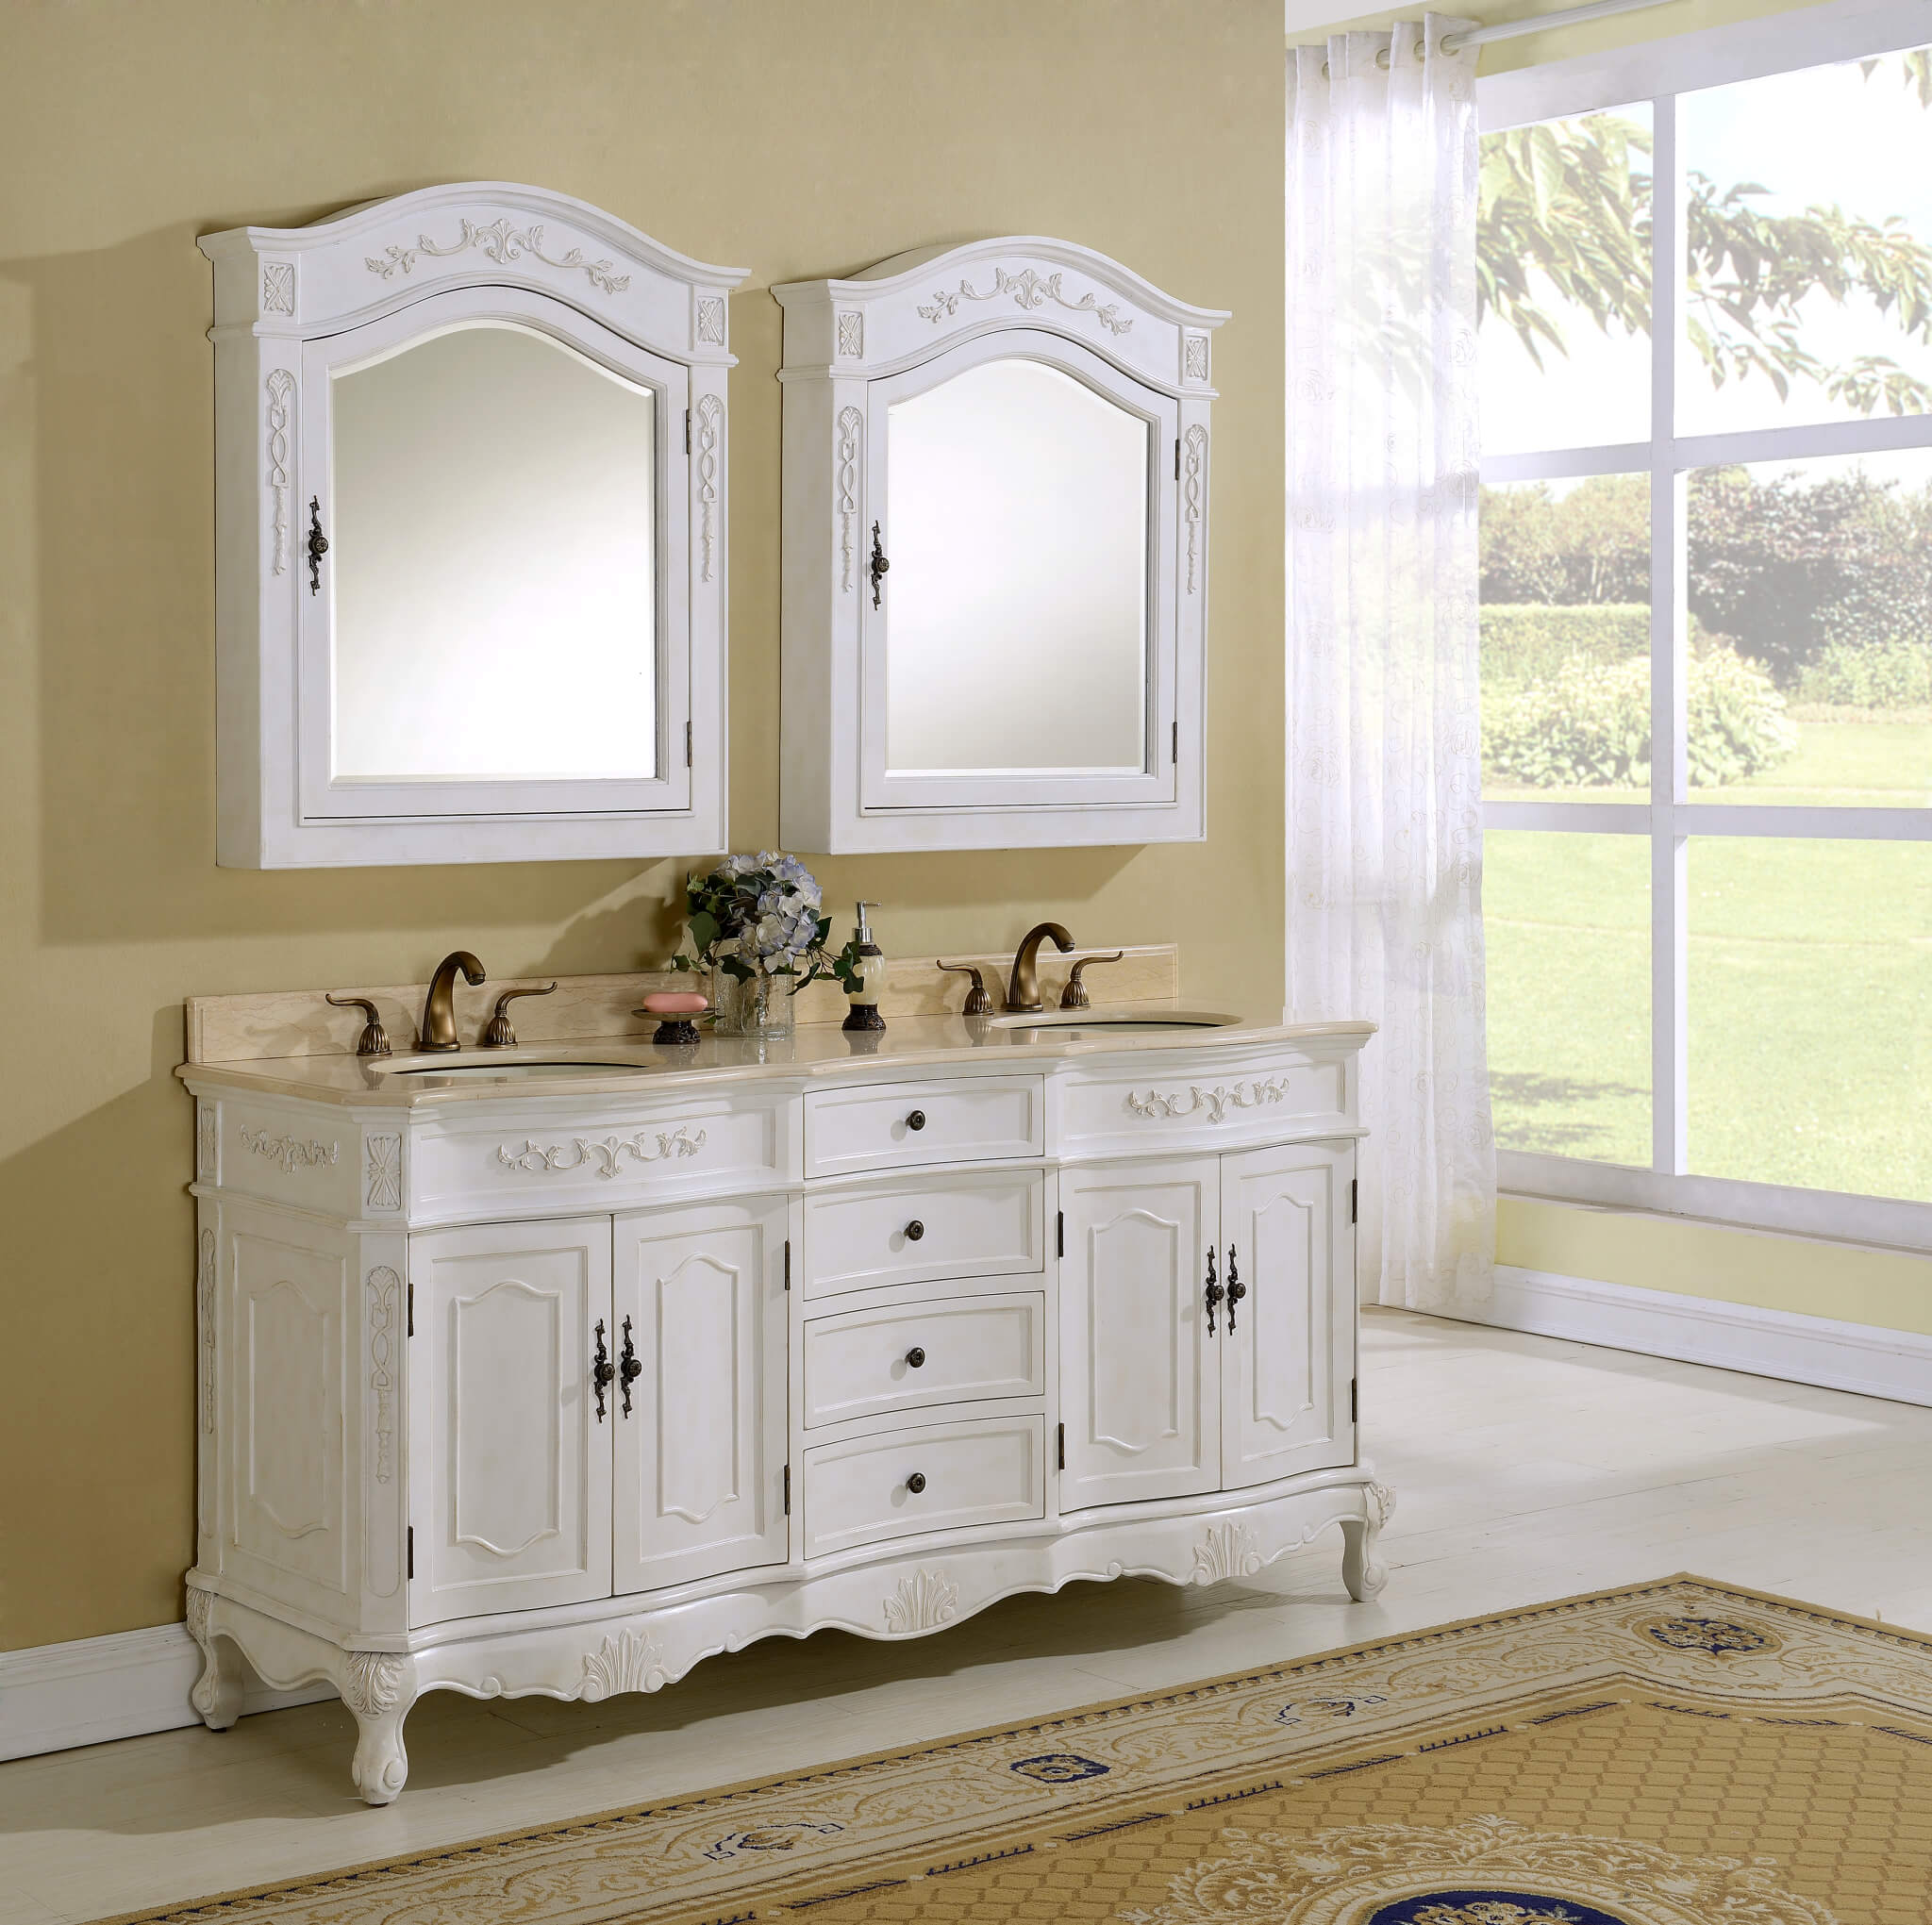 72u2033 Kensington Antique White Bath Vanity